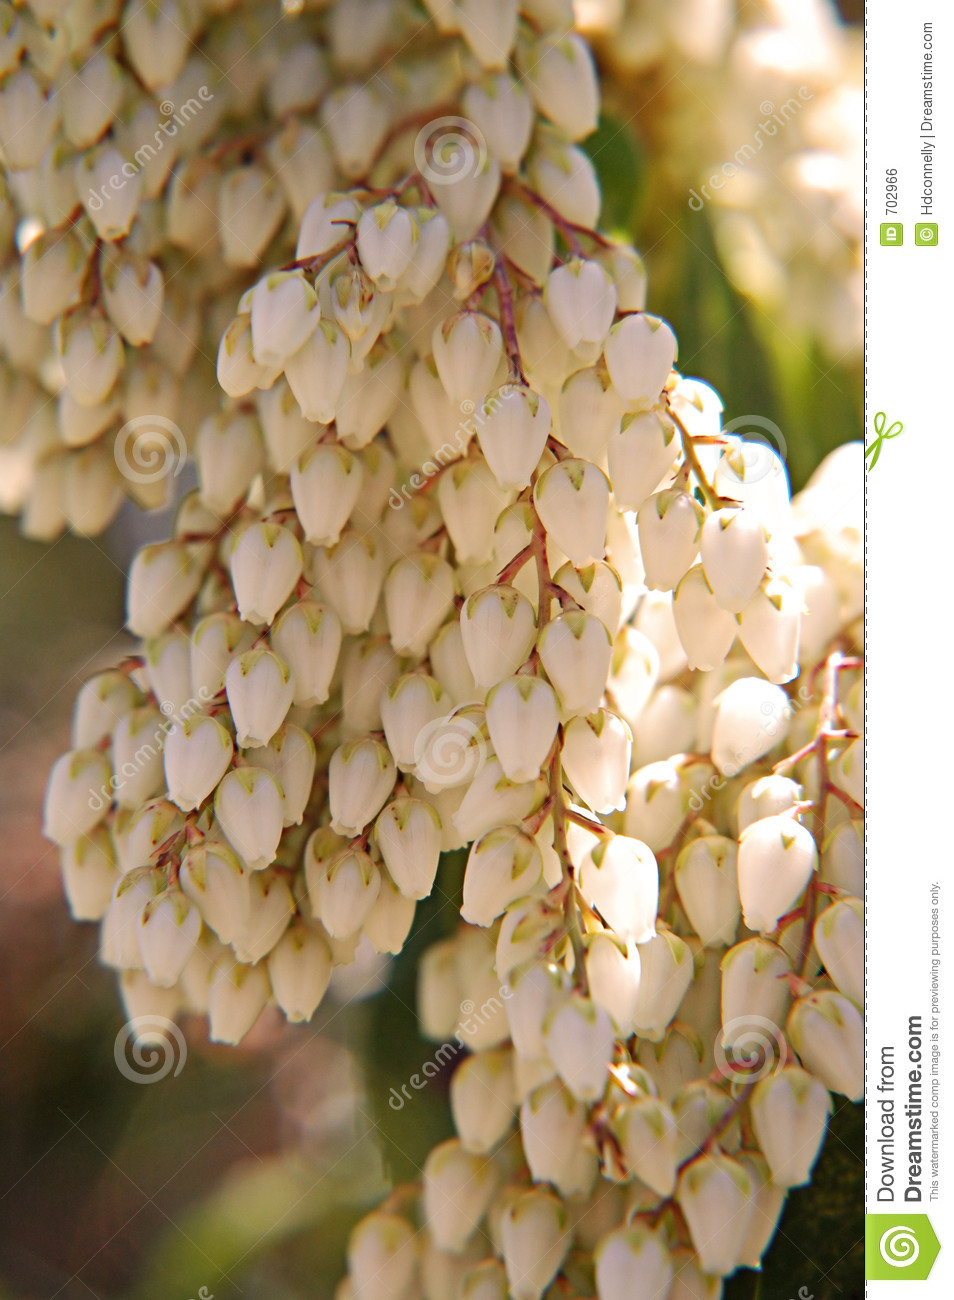 Andromeda stock photo. Image of flower, spring, outdoor - 702966